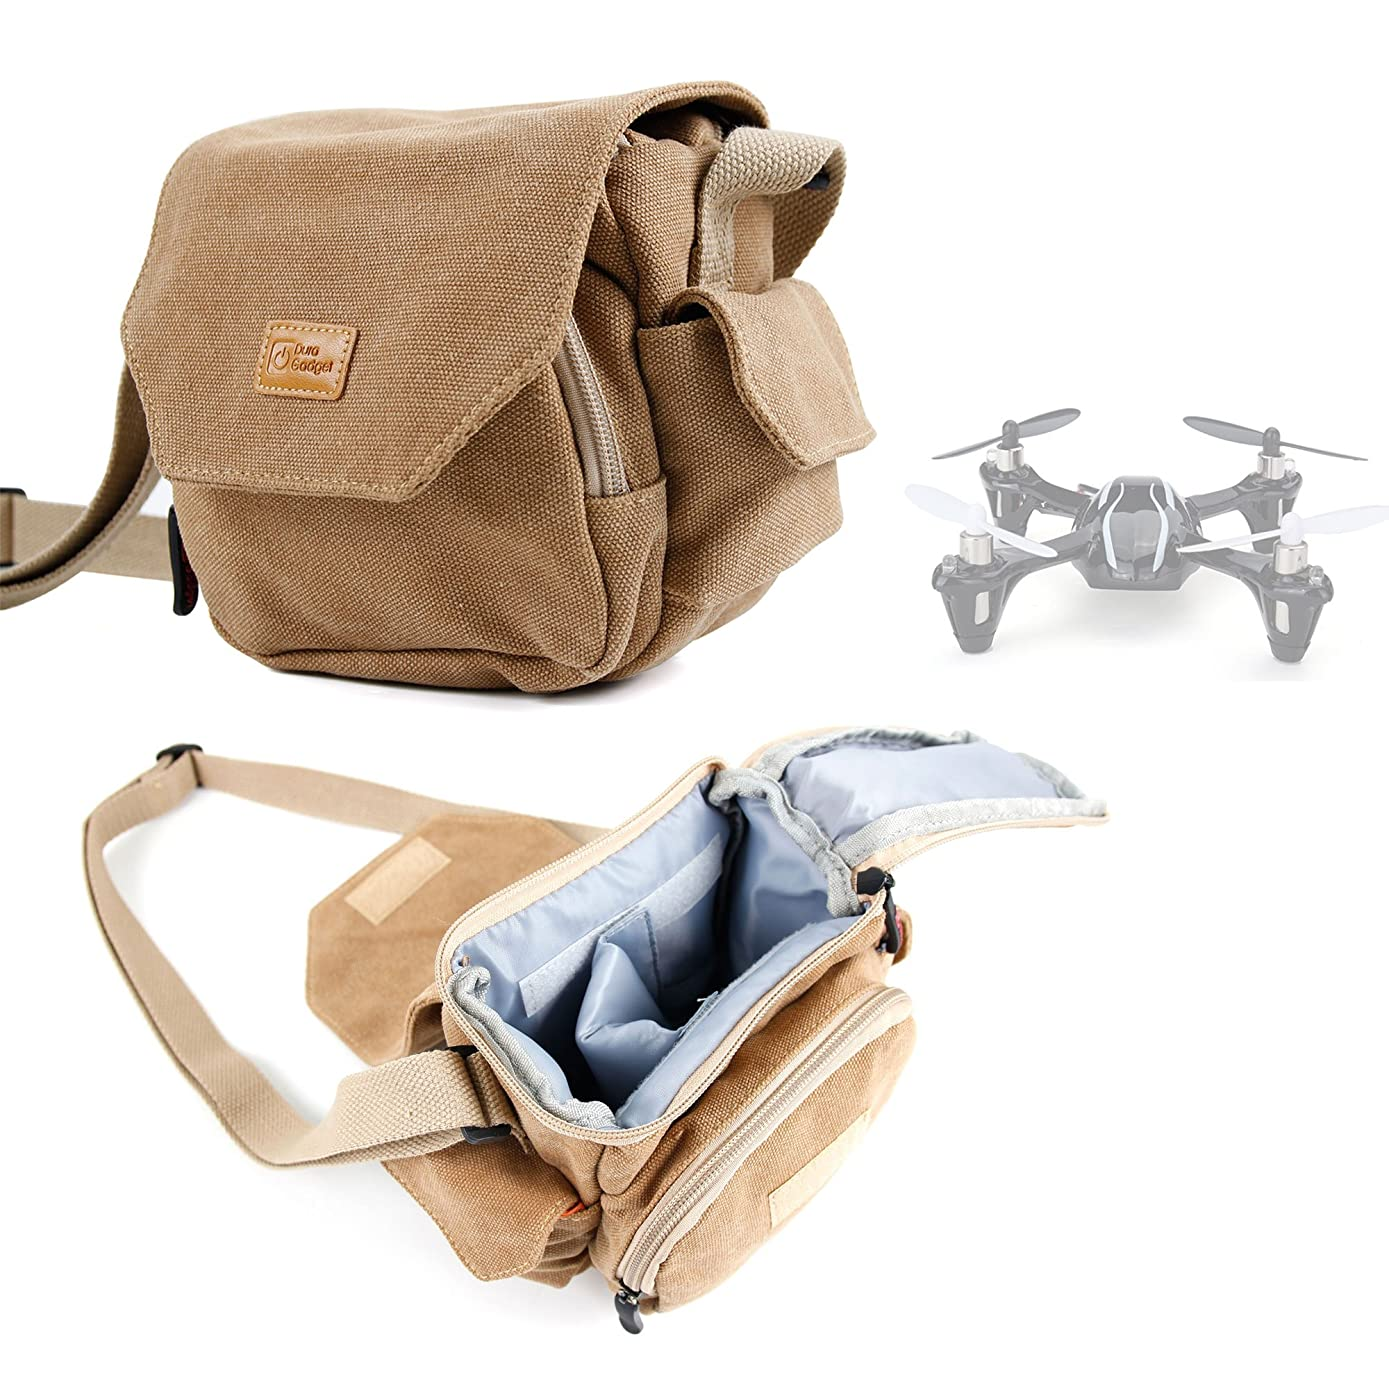 DURAGADGET Light Brown Medium Sized Canvas Carry Bag - Suitable for Hubsan X4 (H107L) / Hubsan X4 (H107C) / Hubsan Drone (H107B) - with Multiple Pockets & Customizable Interior Compartment